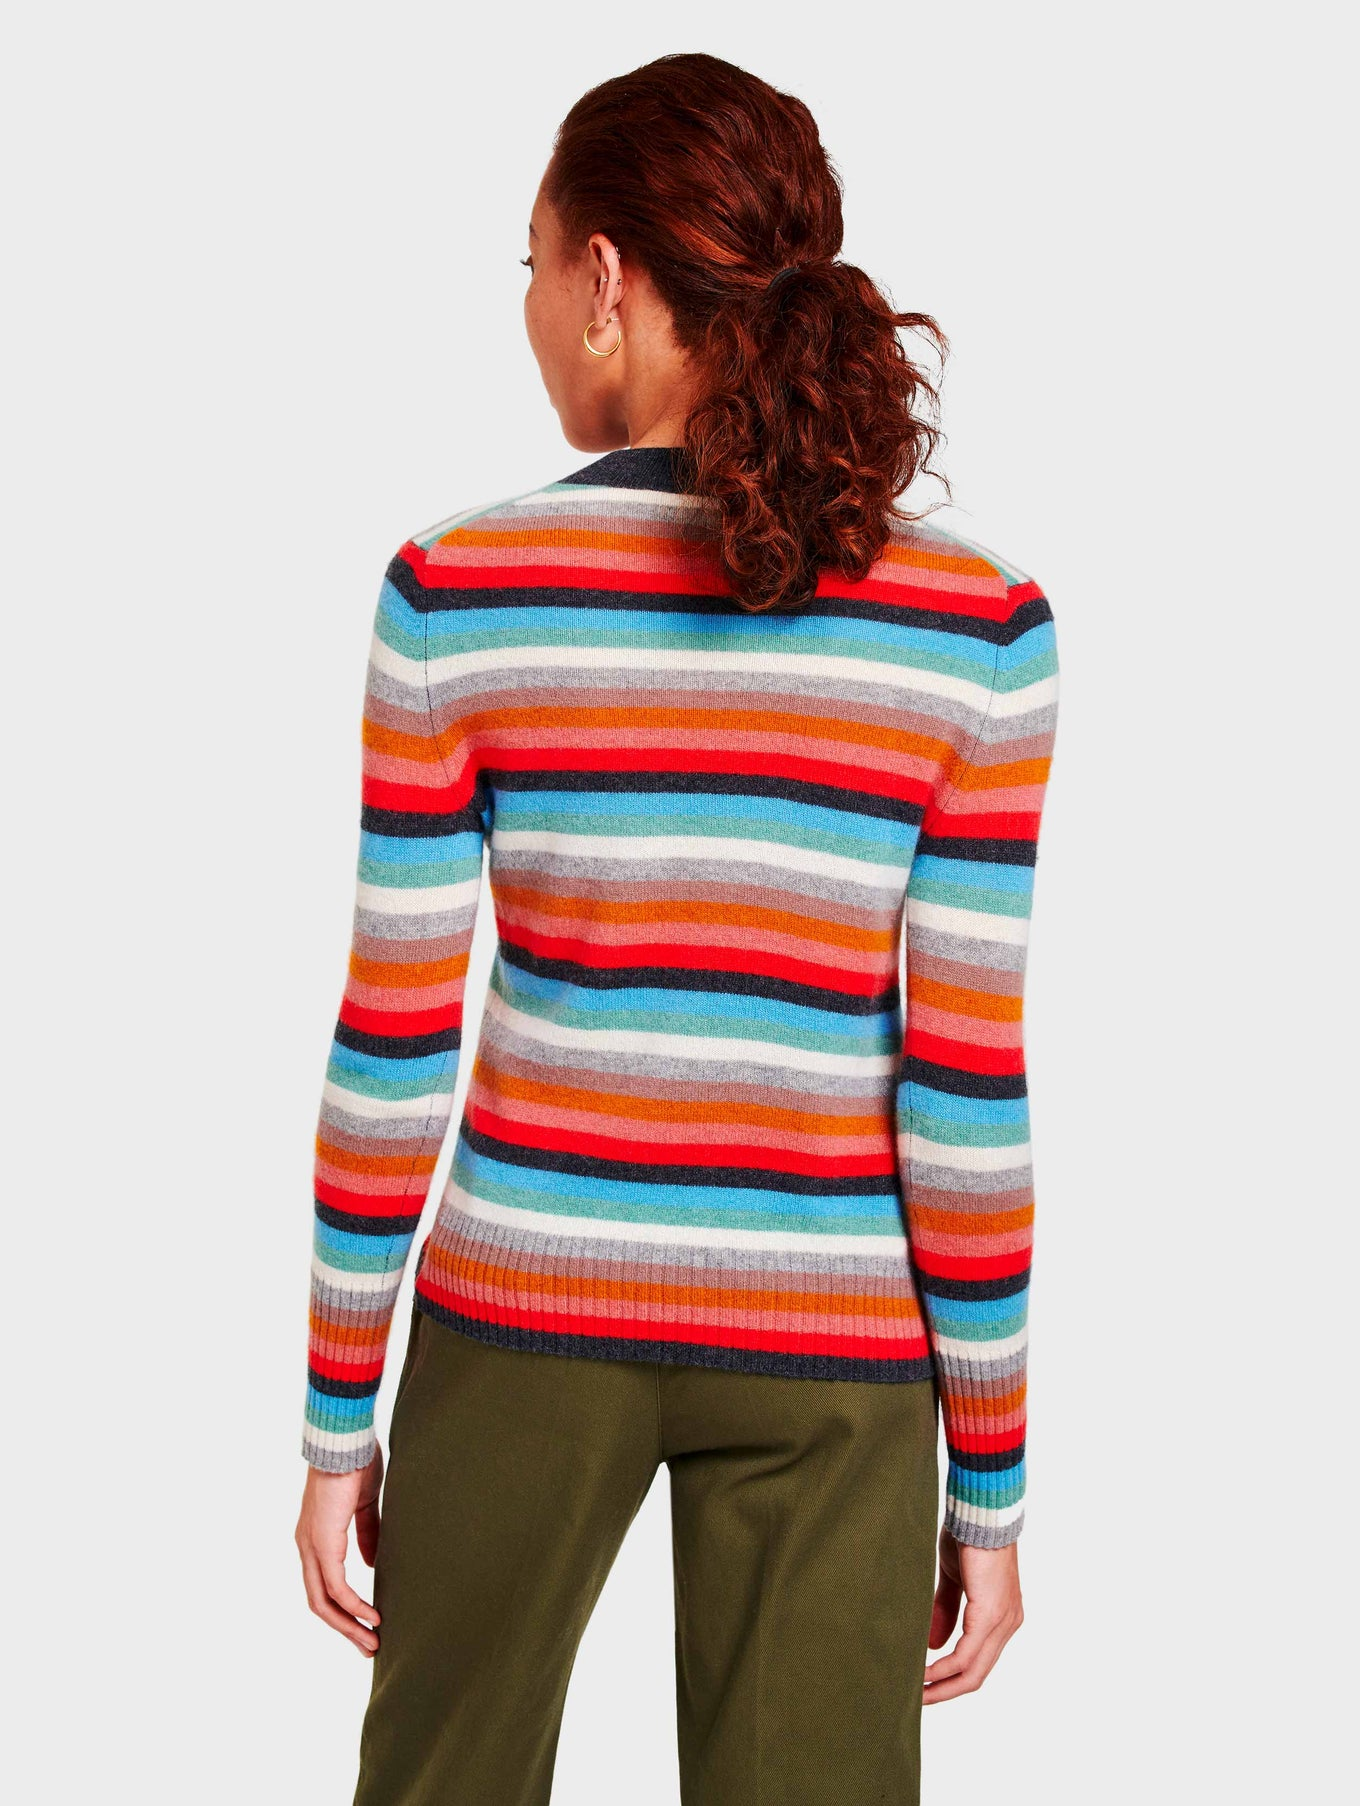 Cashmere Stripe Mockneck - Sunset Red Multi - Image 4